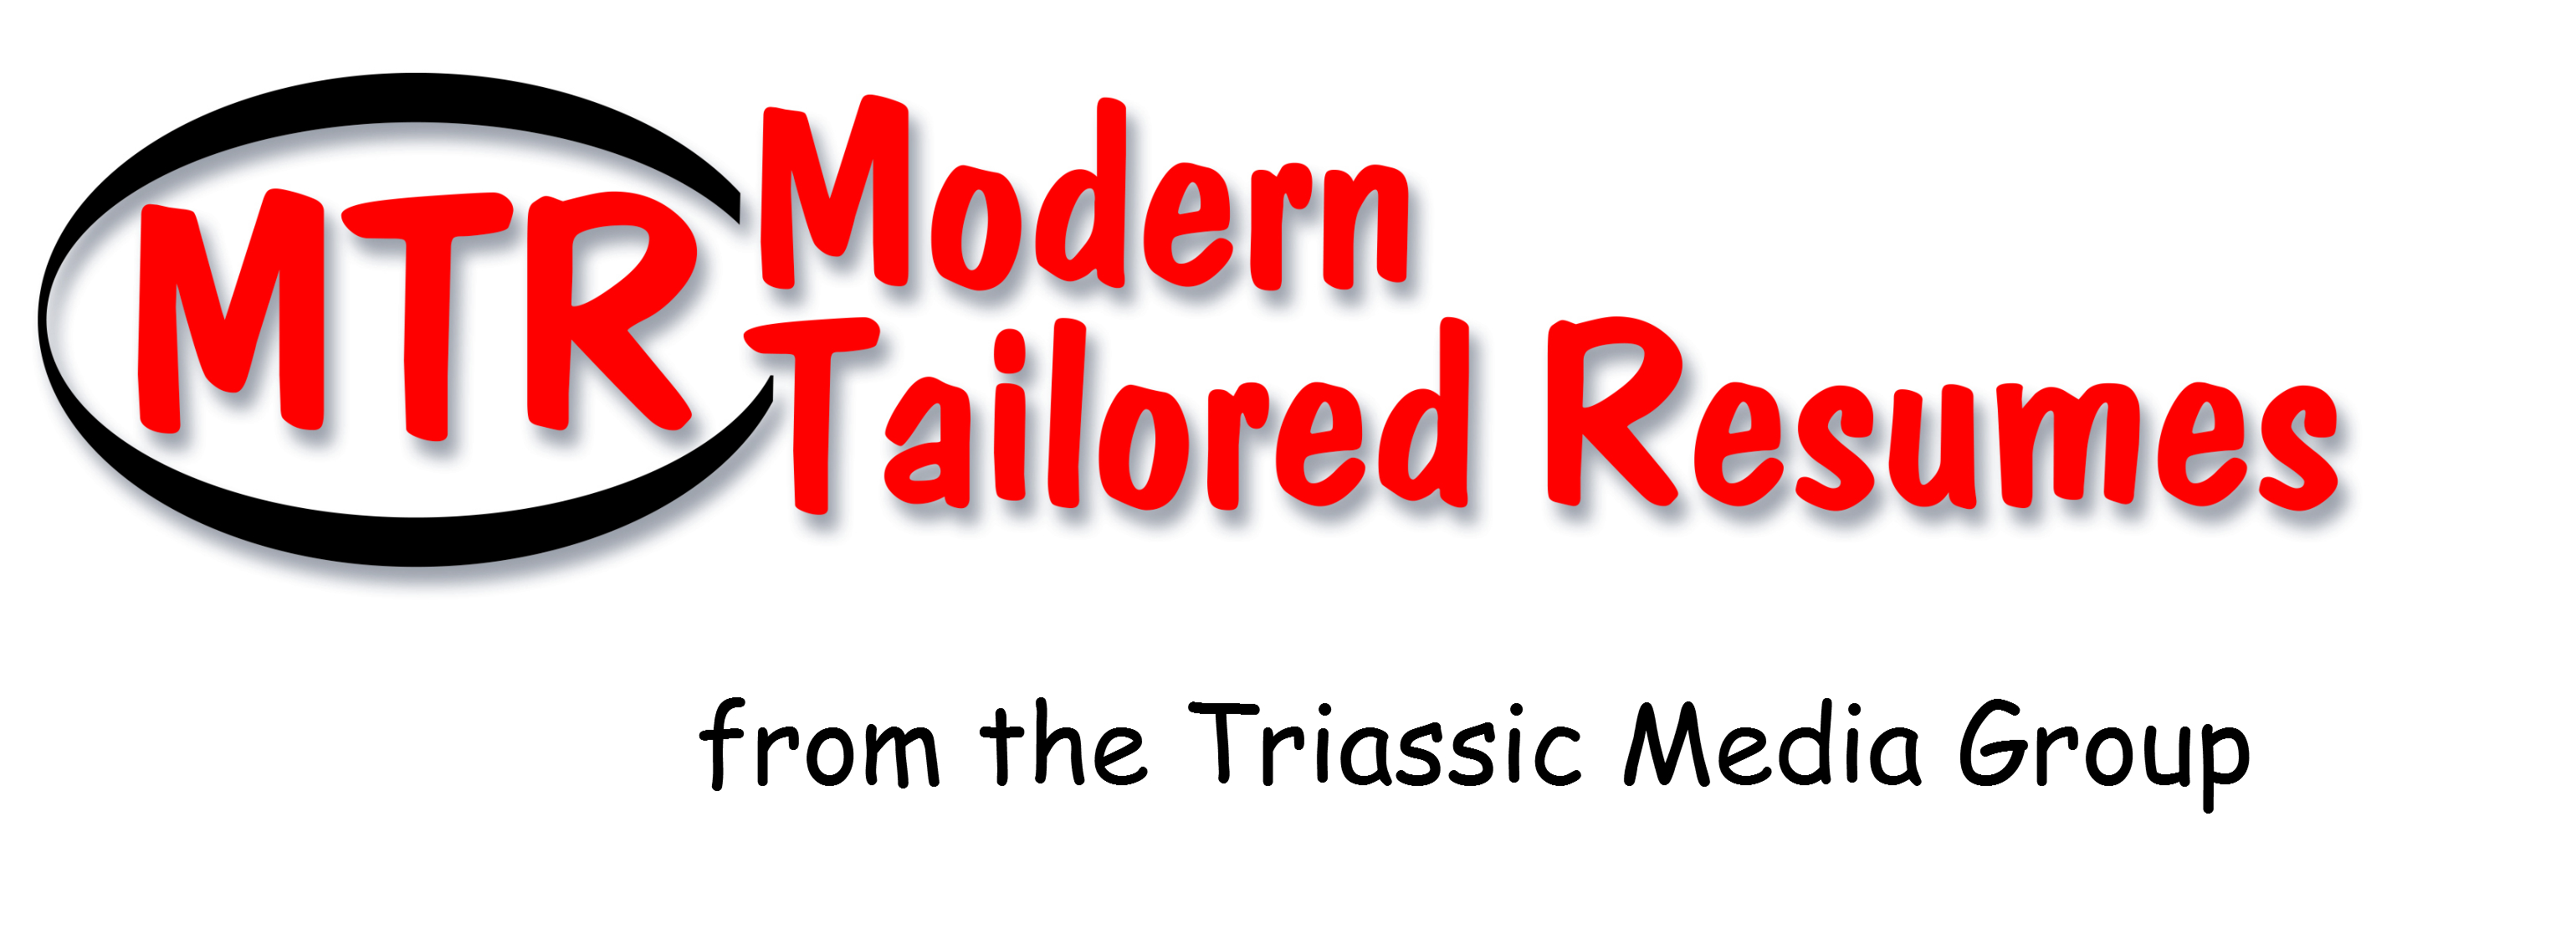 Modern Tailored Resumes